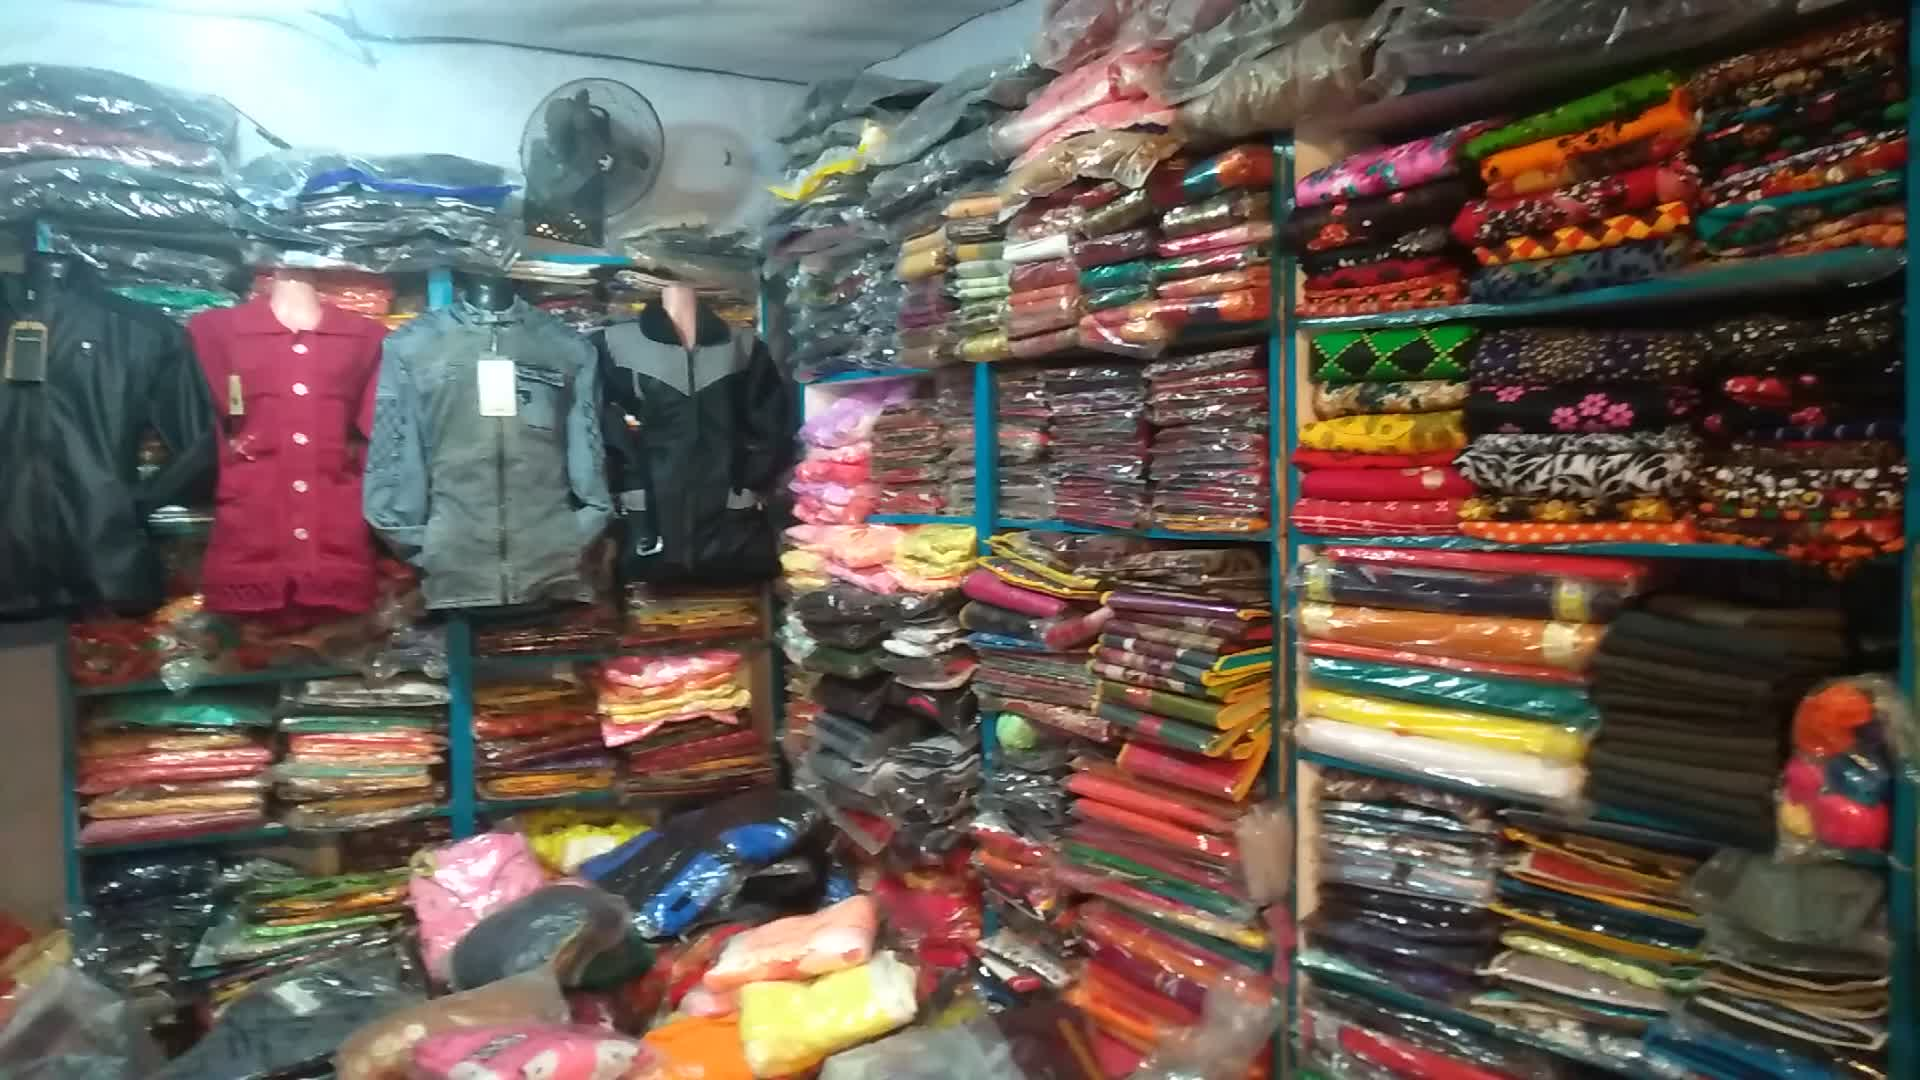 Video footage of a high quality merchant shop in the country's garment industry.  The beautiful environment is full of goods and clothes.  A video of her looking very beautiful.  Brakhrajpur market among you?